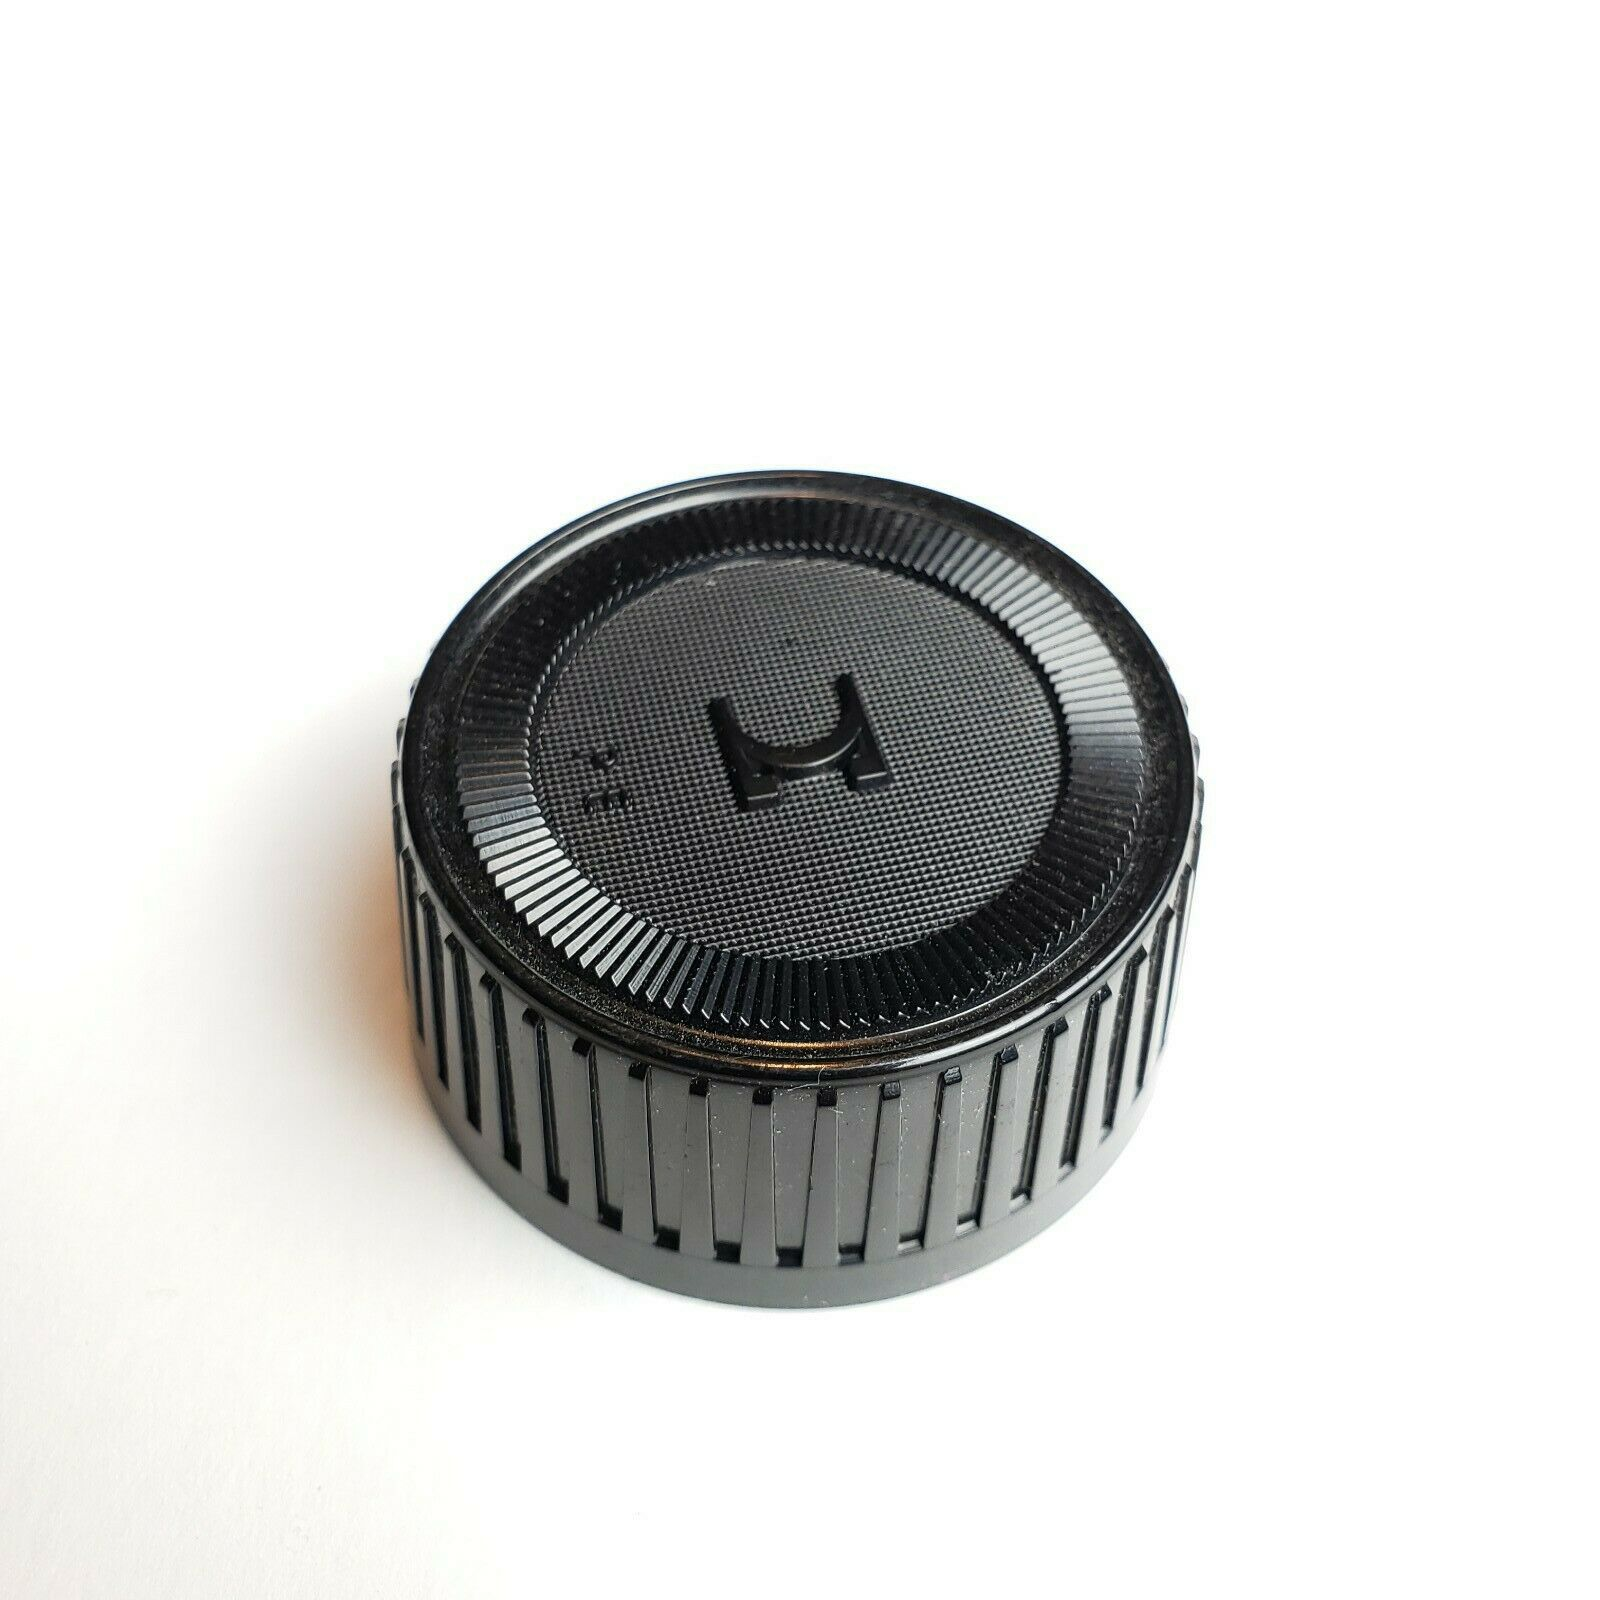 Sigma m42 Rear Lens Cap Made in Japan Vintage Film Camera Collectable  Cap Only - $4.88